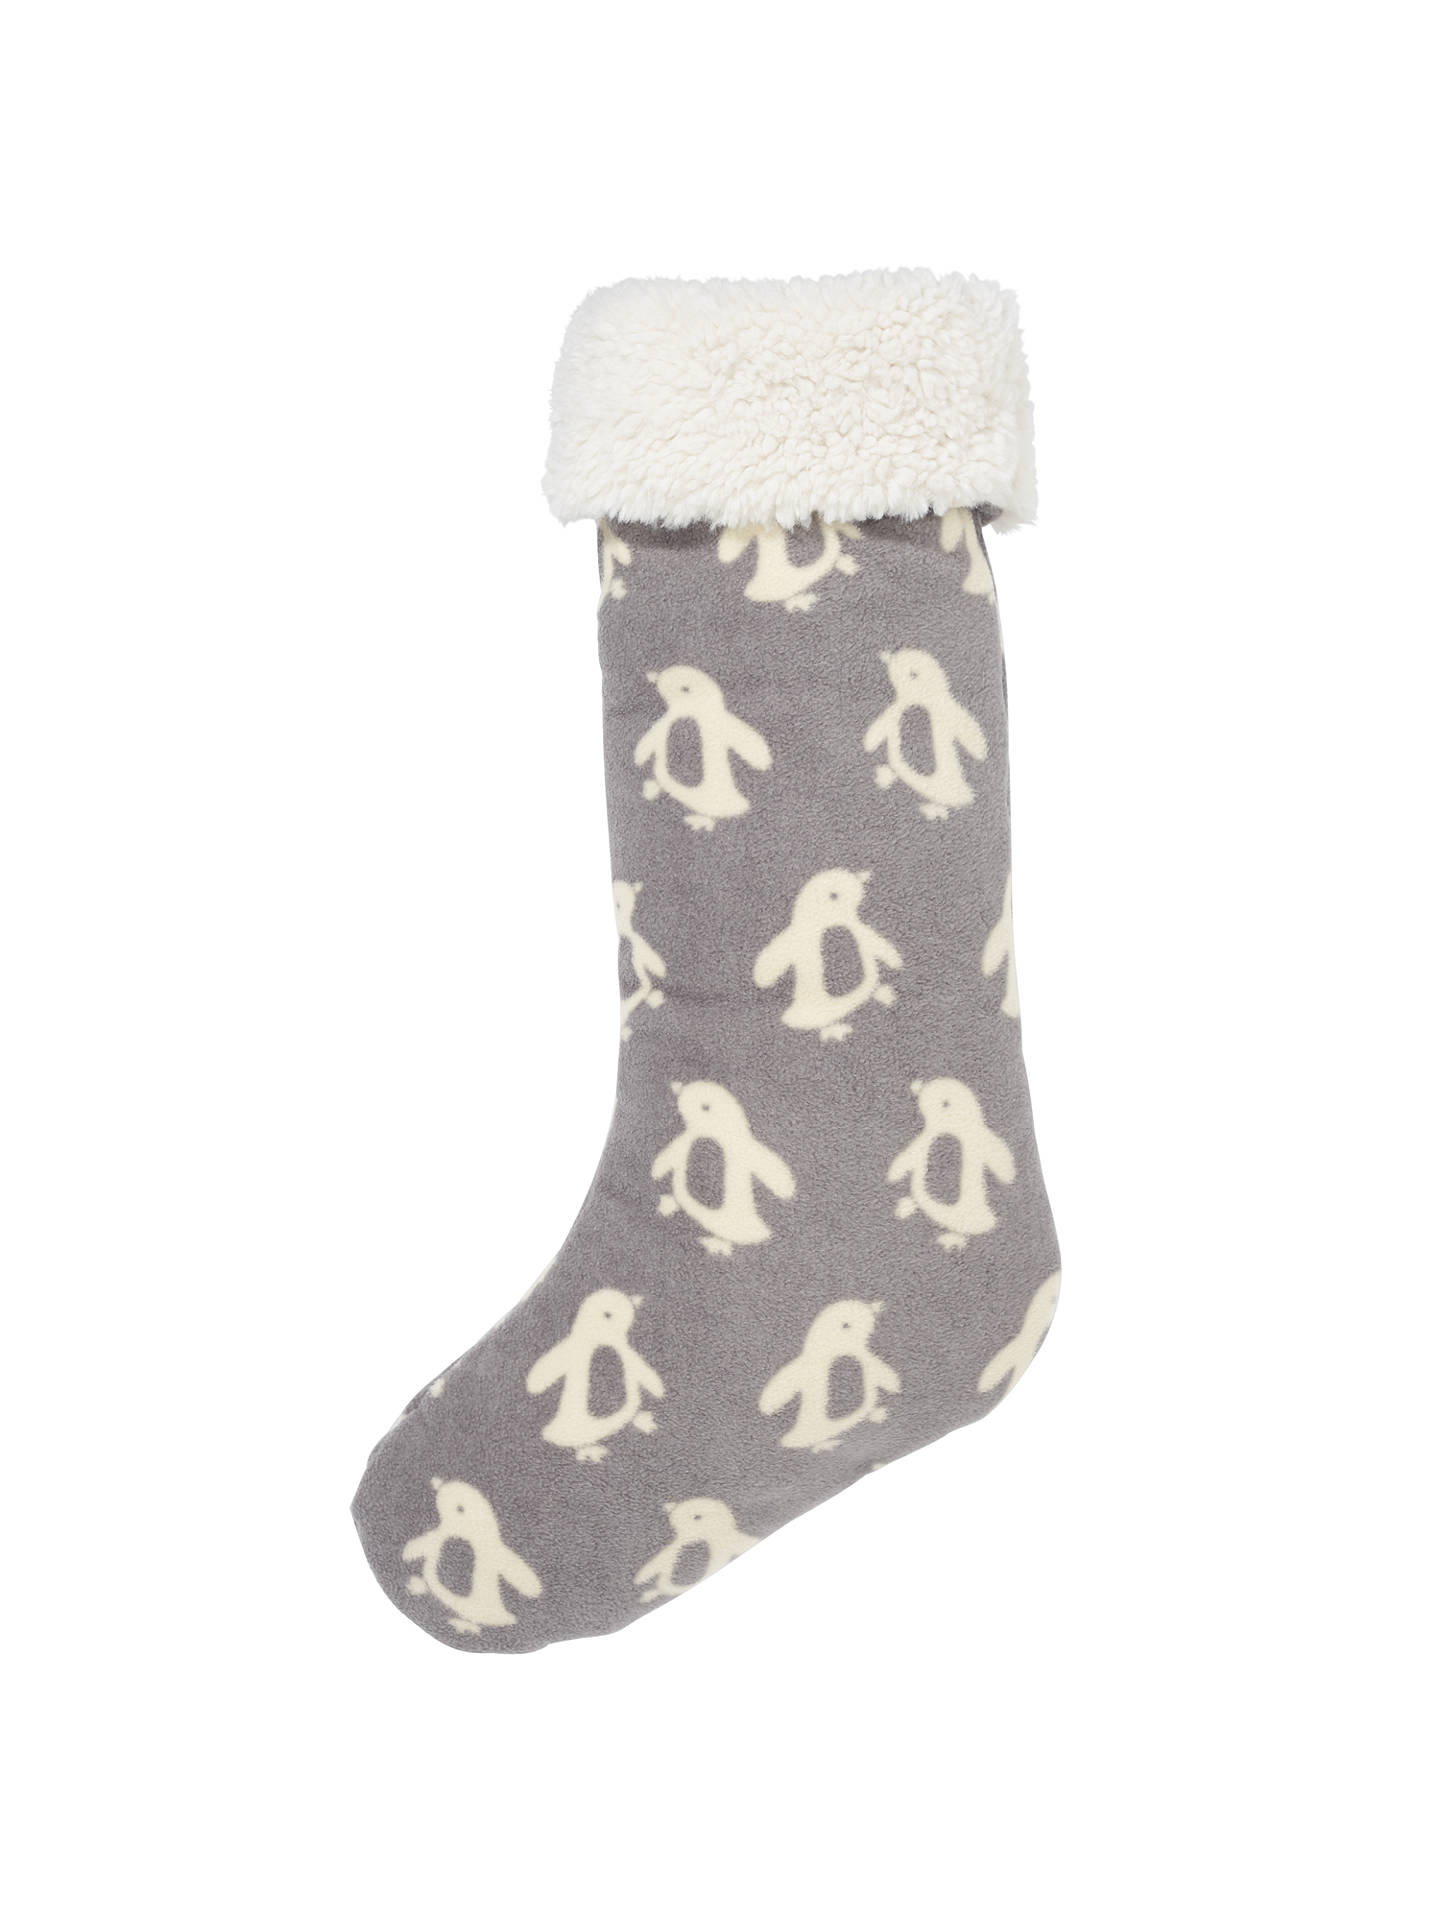 Buy John Lewis Penguin Stocking Online at johnlewis.com